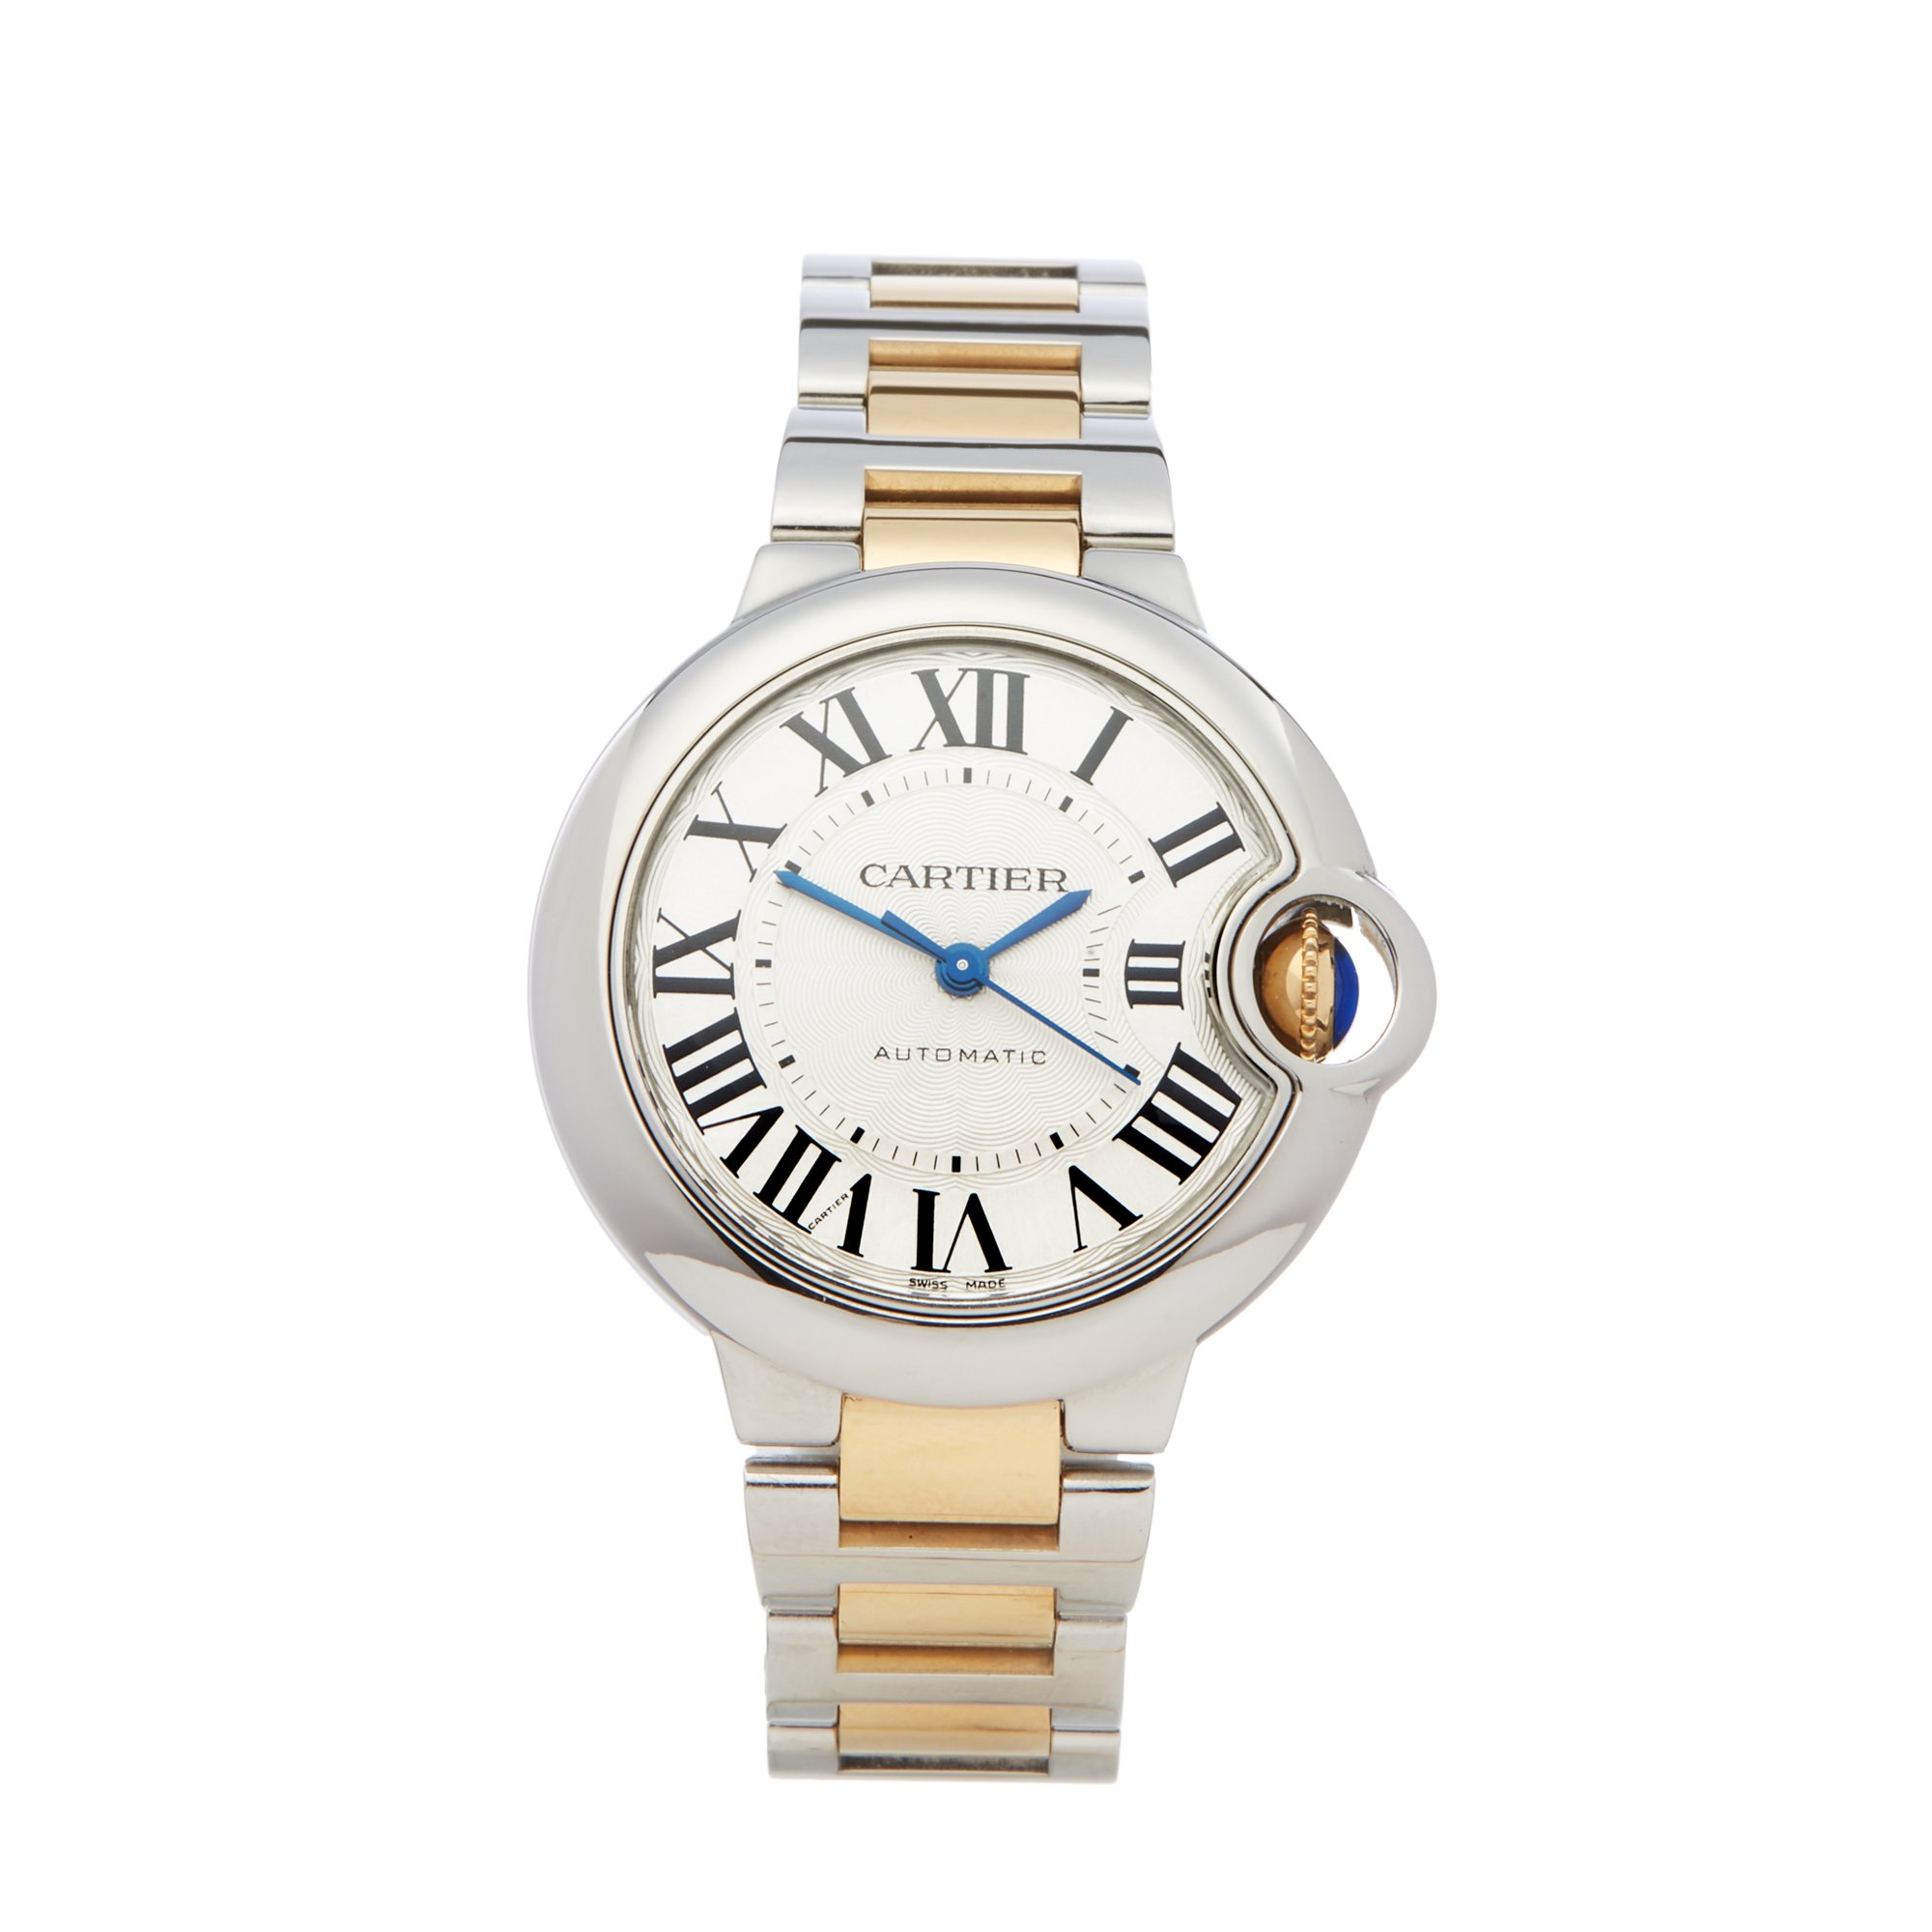 Cartier Ballon Bleu Stainless Steel & Yellow Gold W2BB0002 or 3489